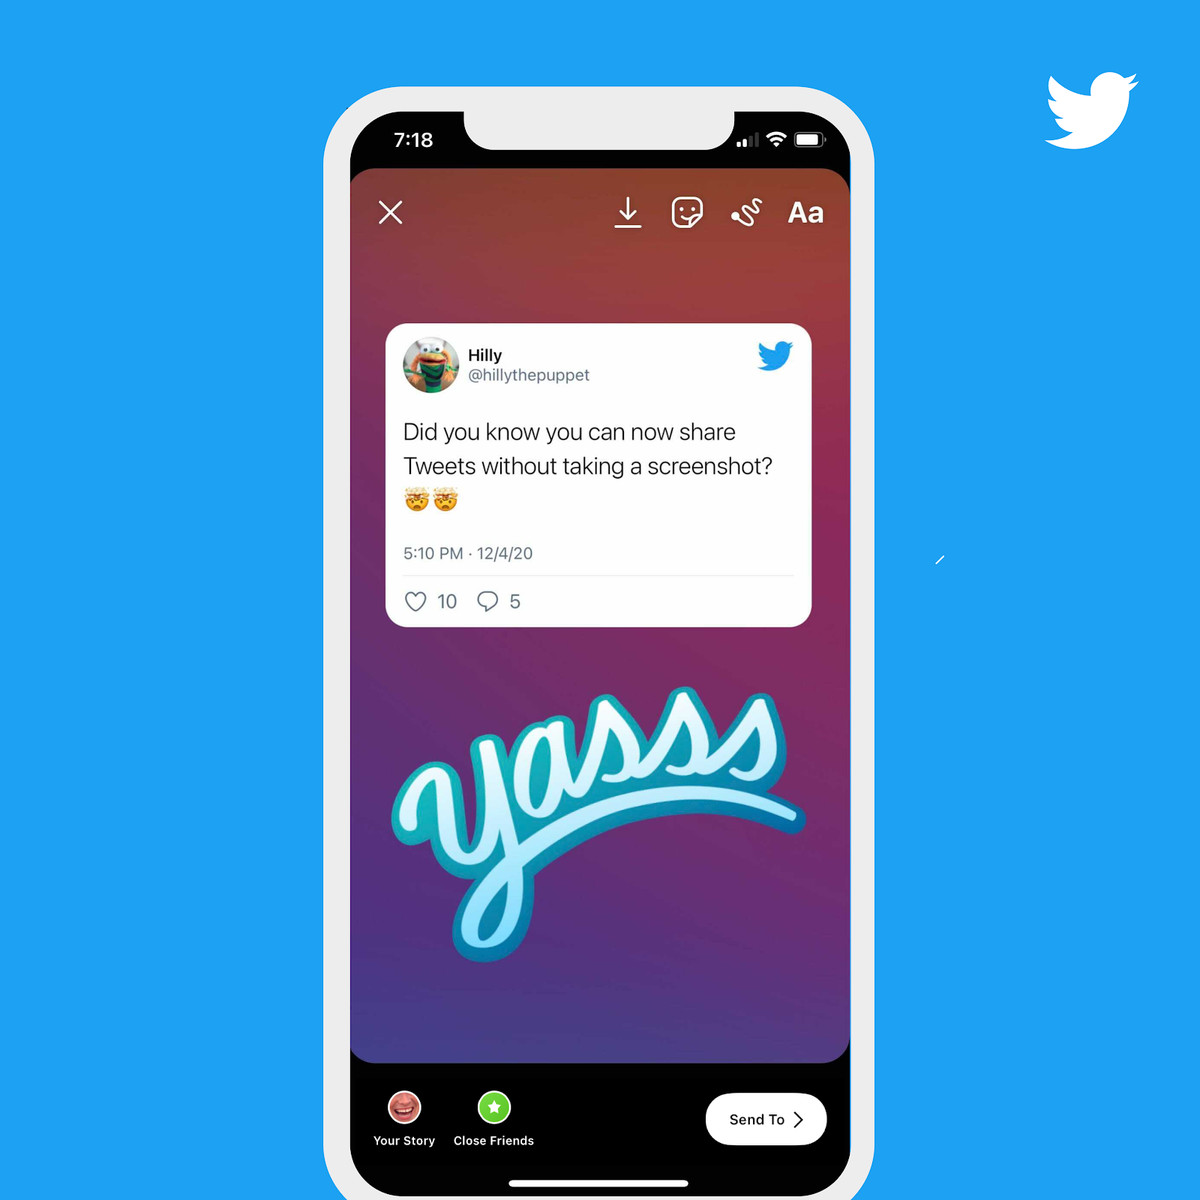 Image of a tweet that has been embedded into an Instagram story